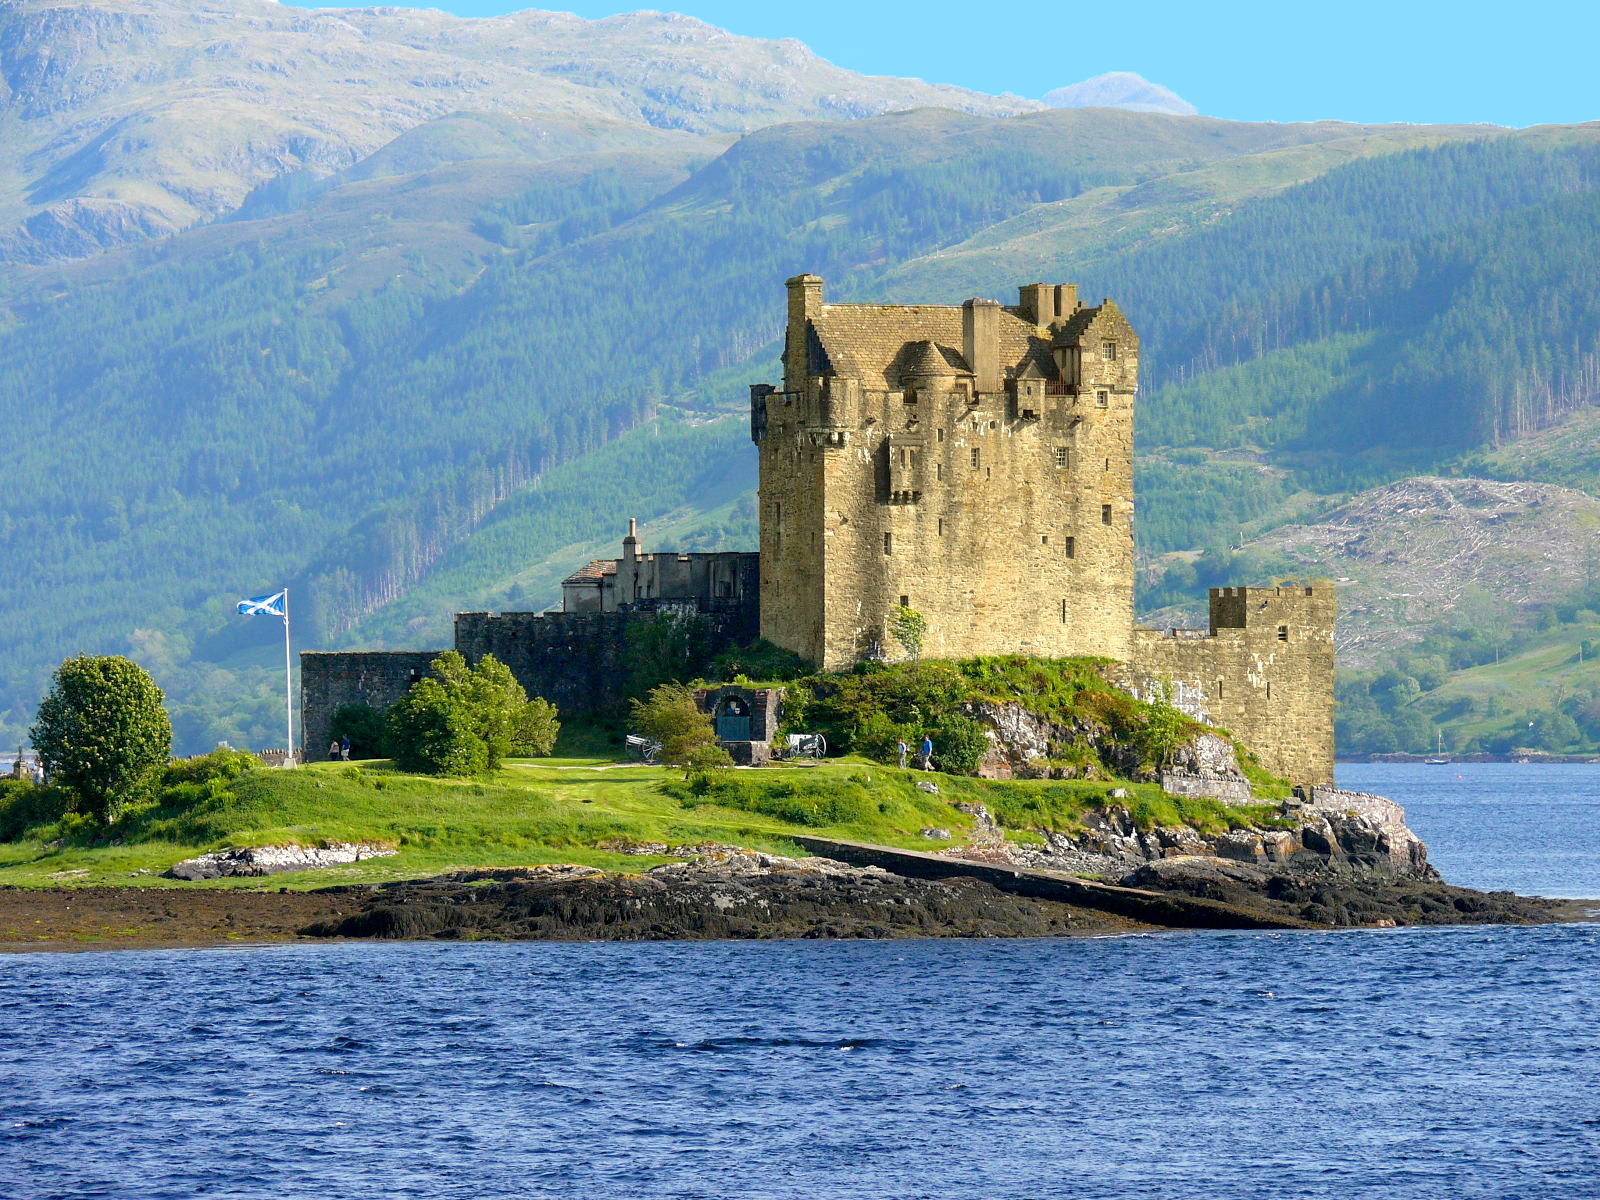 Gohagan_2018_CelticLands_01_Scotland_EileanDonanCastle_(C)(WT-shared) Albion at wts wikivoyage_WC_CC.jpg